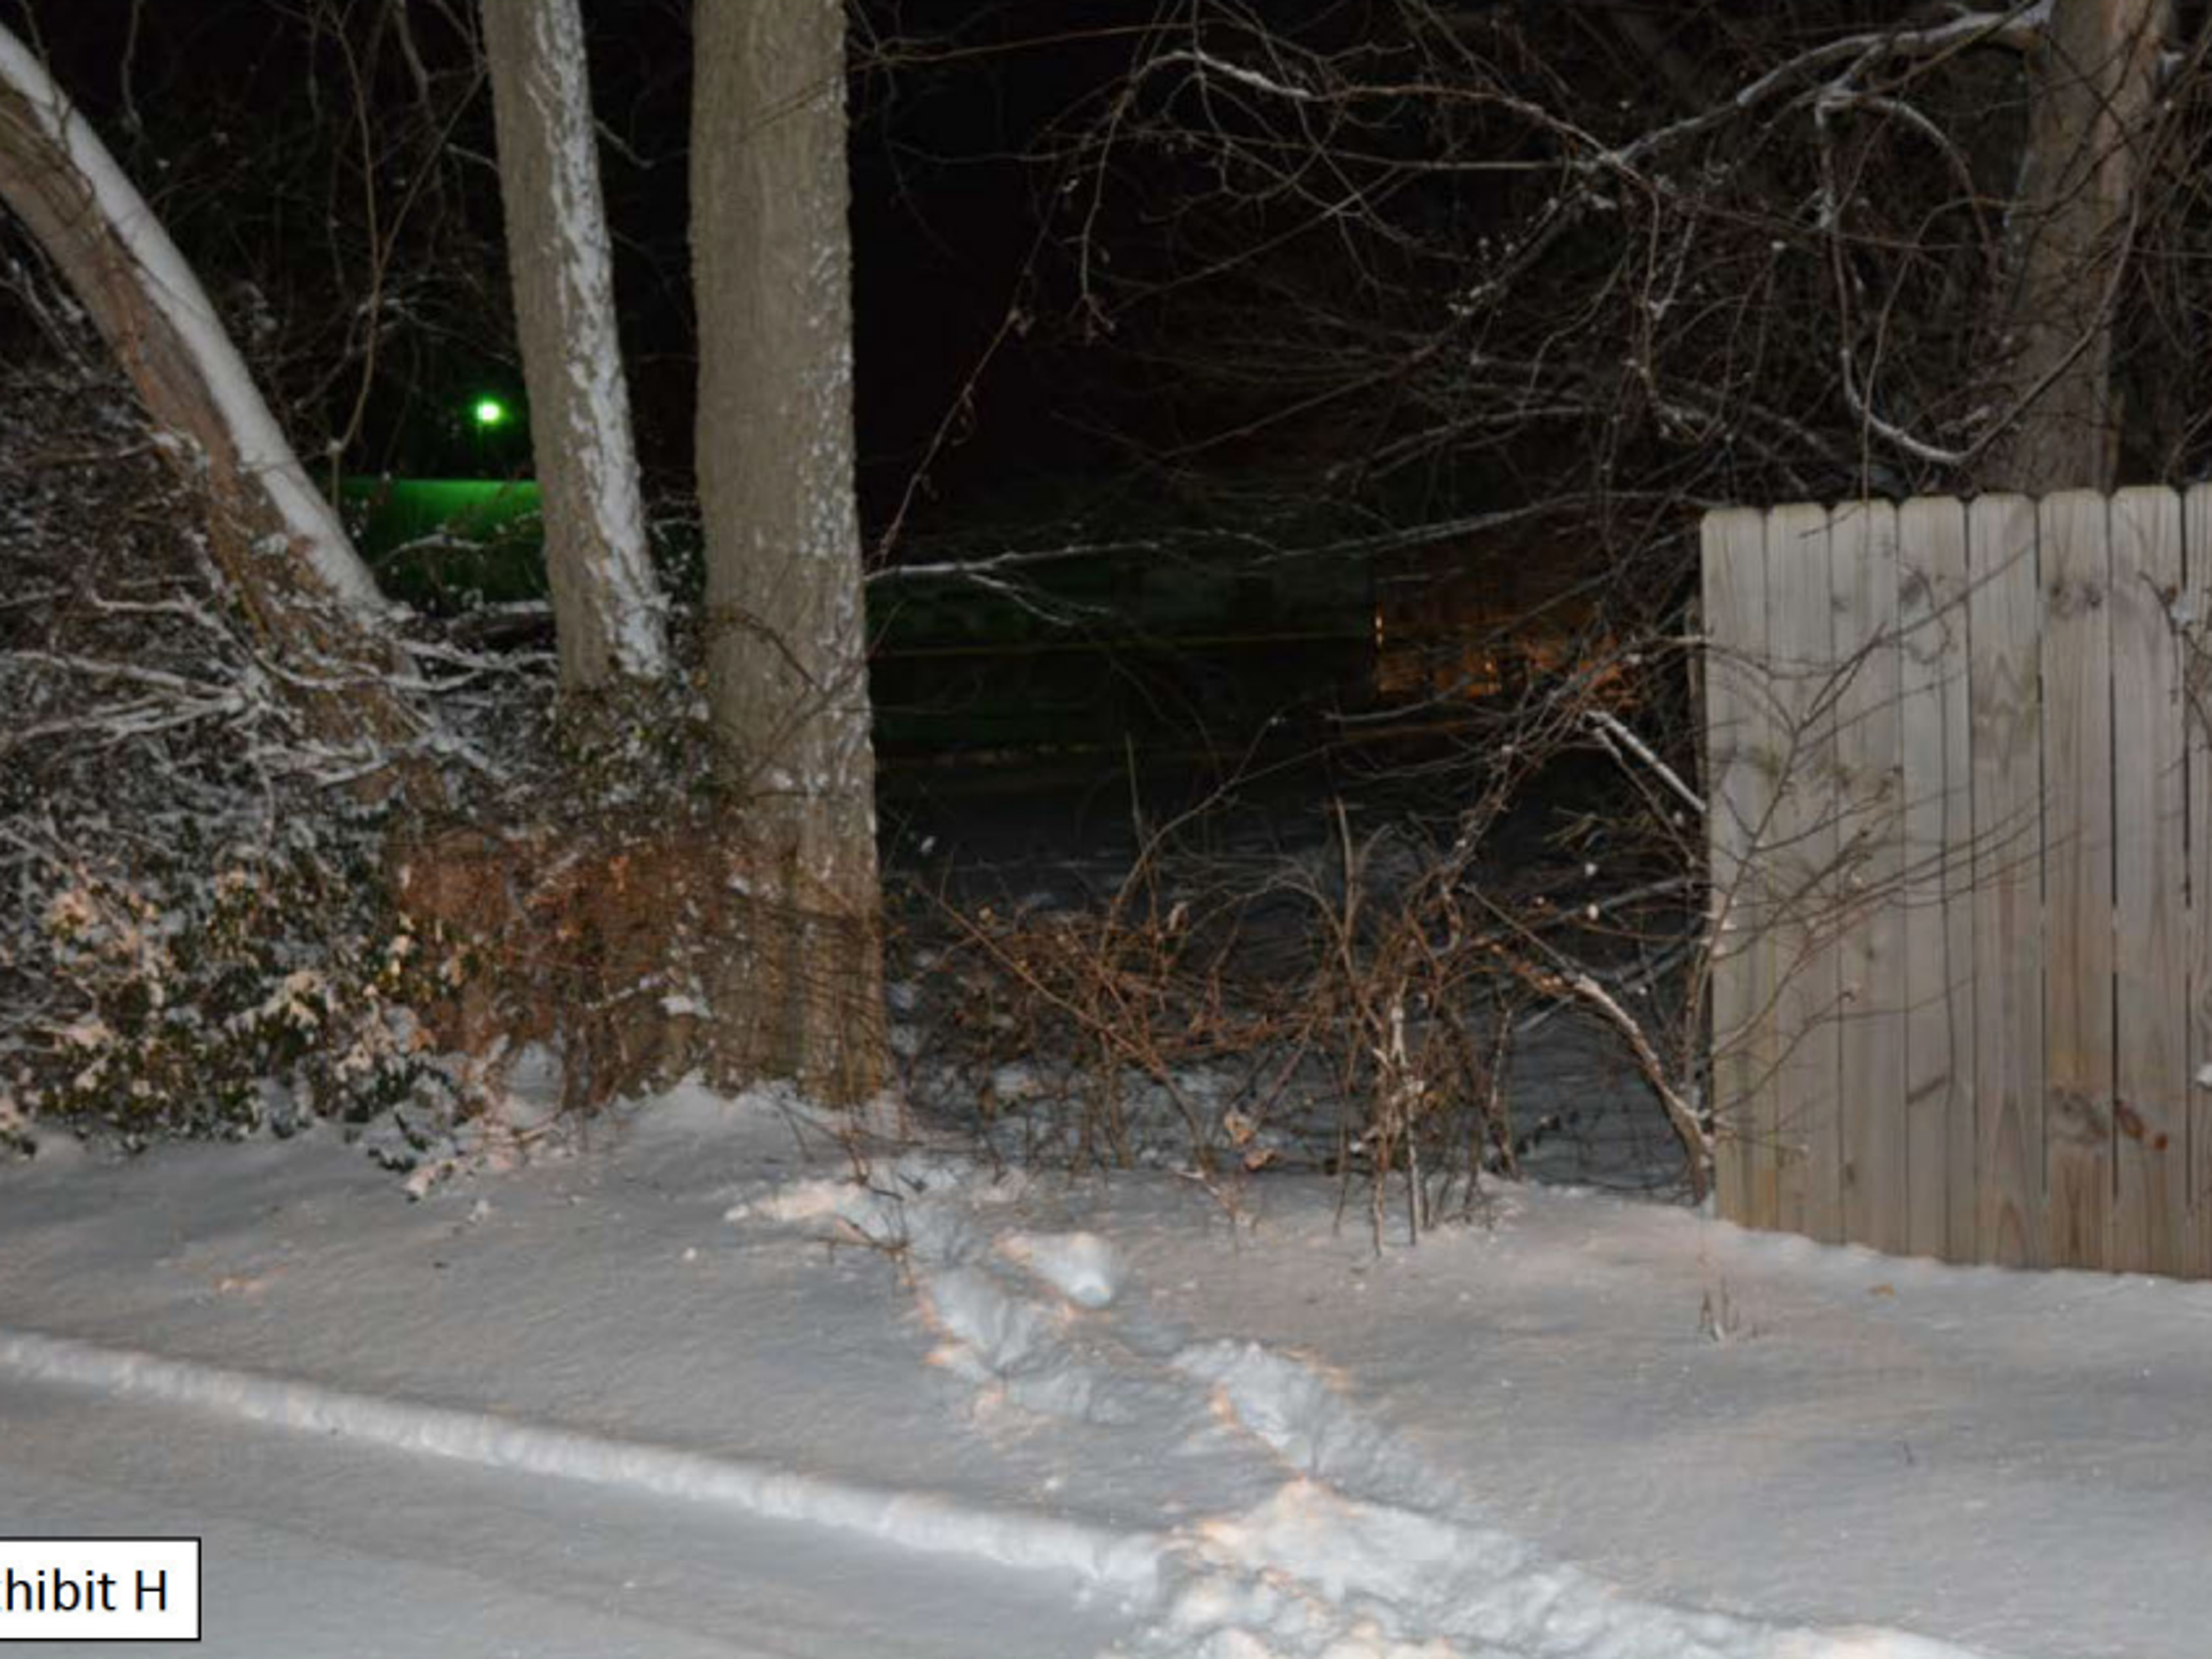 Police say footprints on the snowy evening helped Officer